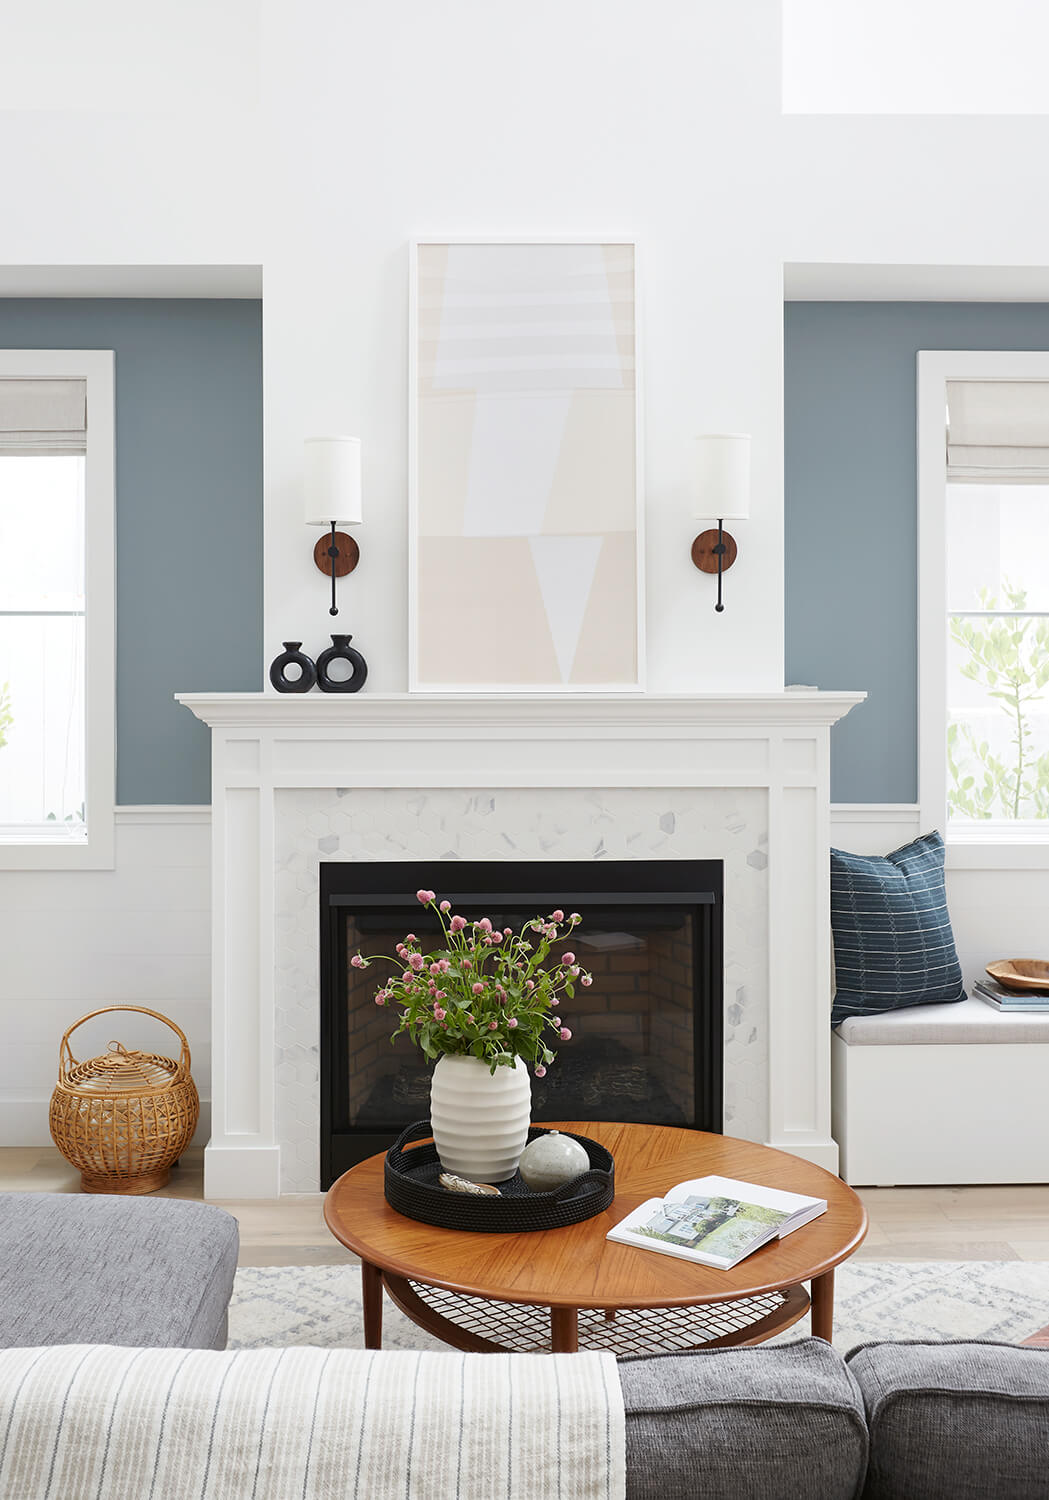 GINNY_MACDONALD_MODERN_FIREPLACE